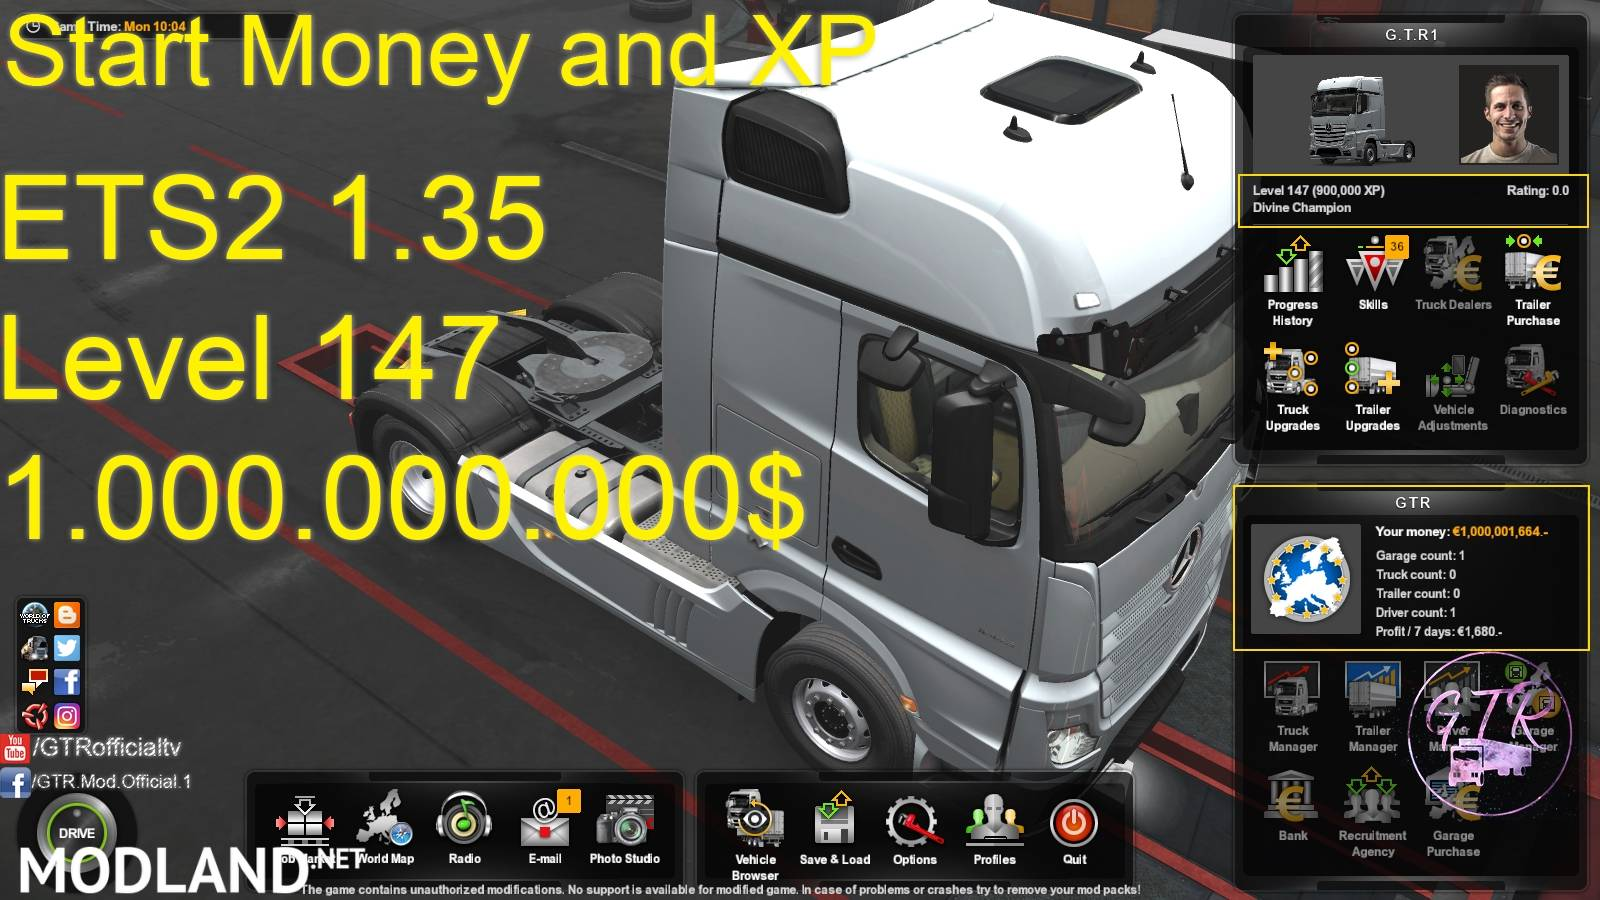 START MONEY AND XP FOR ETS2 1 35 mod for ETS 2